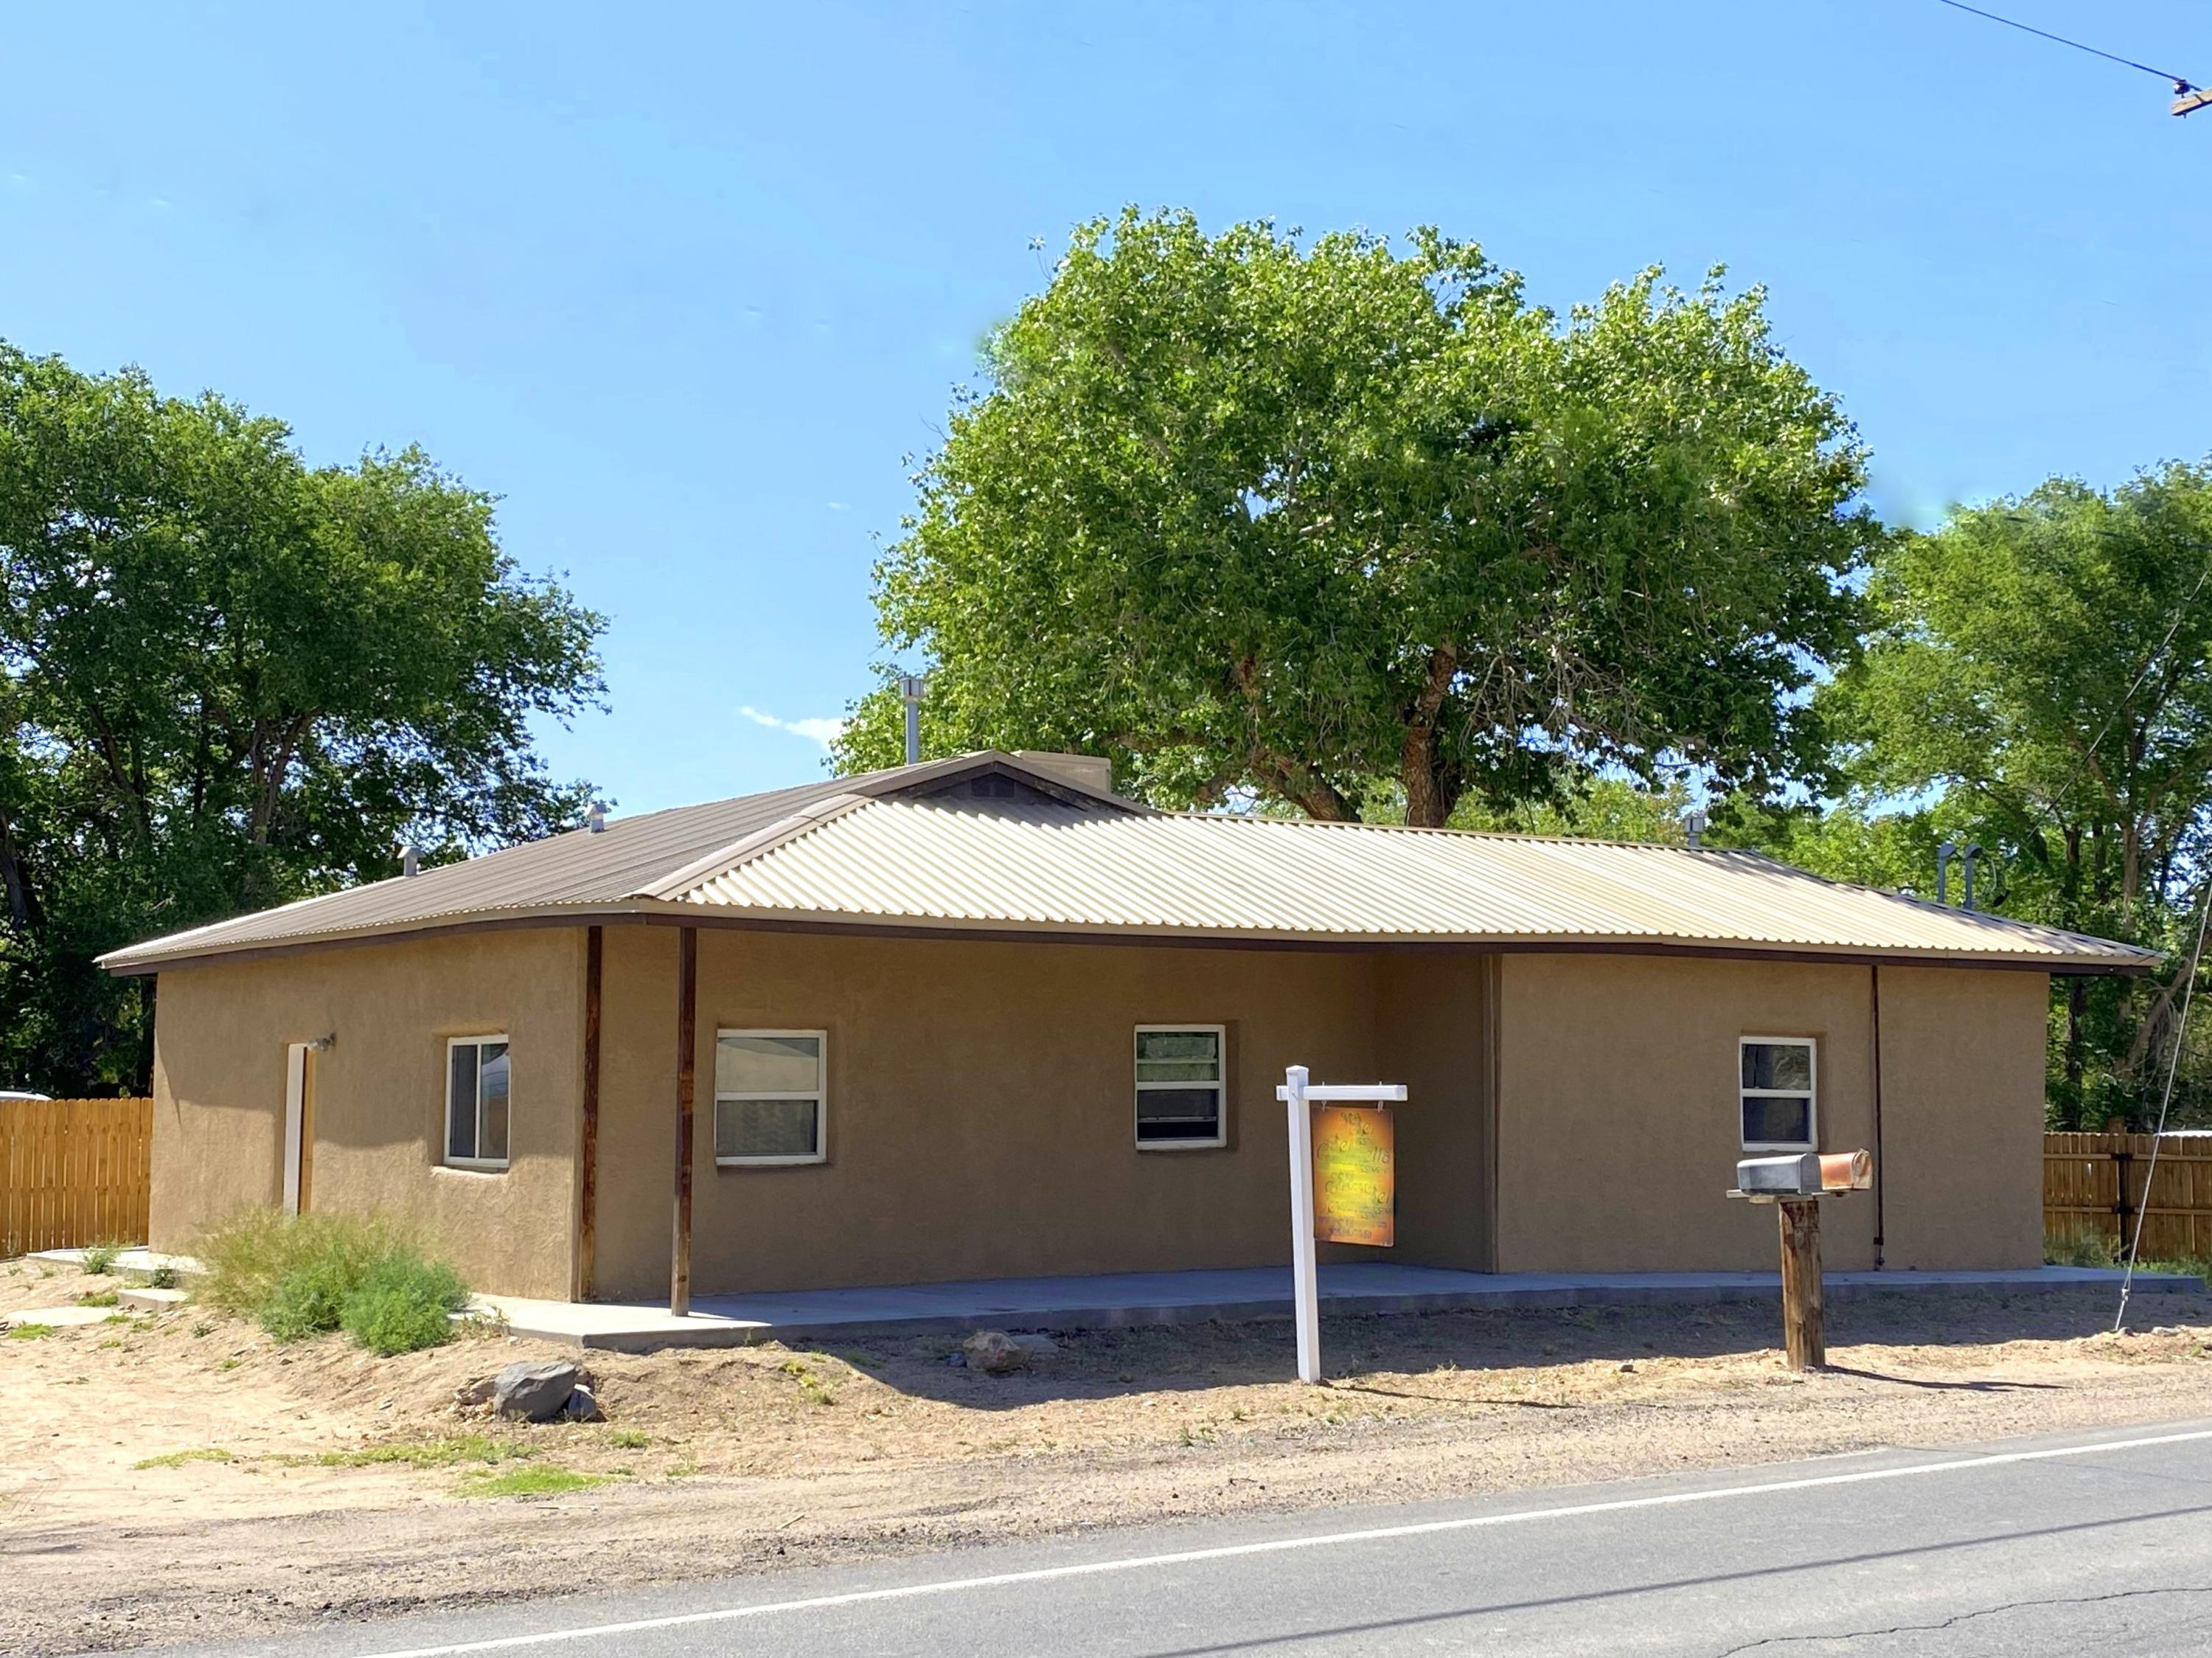 Two great properties for the price of one!  Located in the Beautiful Rio Grande Valley on 0.6 Acres.  Part of the Tome Land Grant and Adorned with several Cottonwood Trees.   The main home, 2510-B is also a 3 Bed, 1 Bath, 1,140 SF frame home built in 1995.  The guest house, 2510-A is a 2 Bed, 1 Bath, 1,103 SF Adobe built in 1930. The walls are 18'' thick!  Wonderful for maintaining a comfortable home.  Newer metal roof on both houses in 2018.  Newer vinyl, double paned windows.  Both properties share a septic system and a shared well, installed and permitted 9/2020.